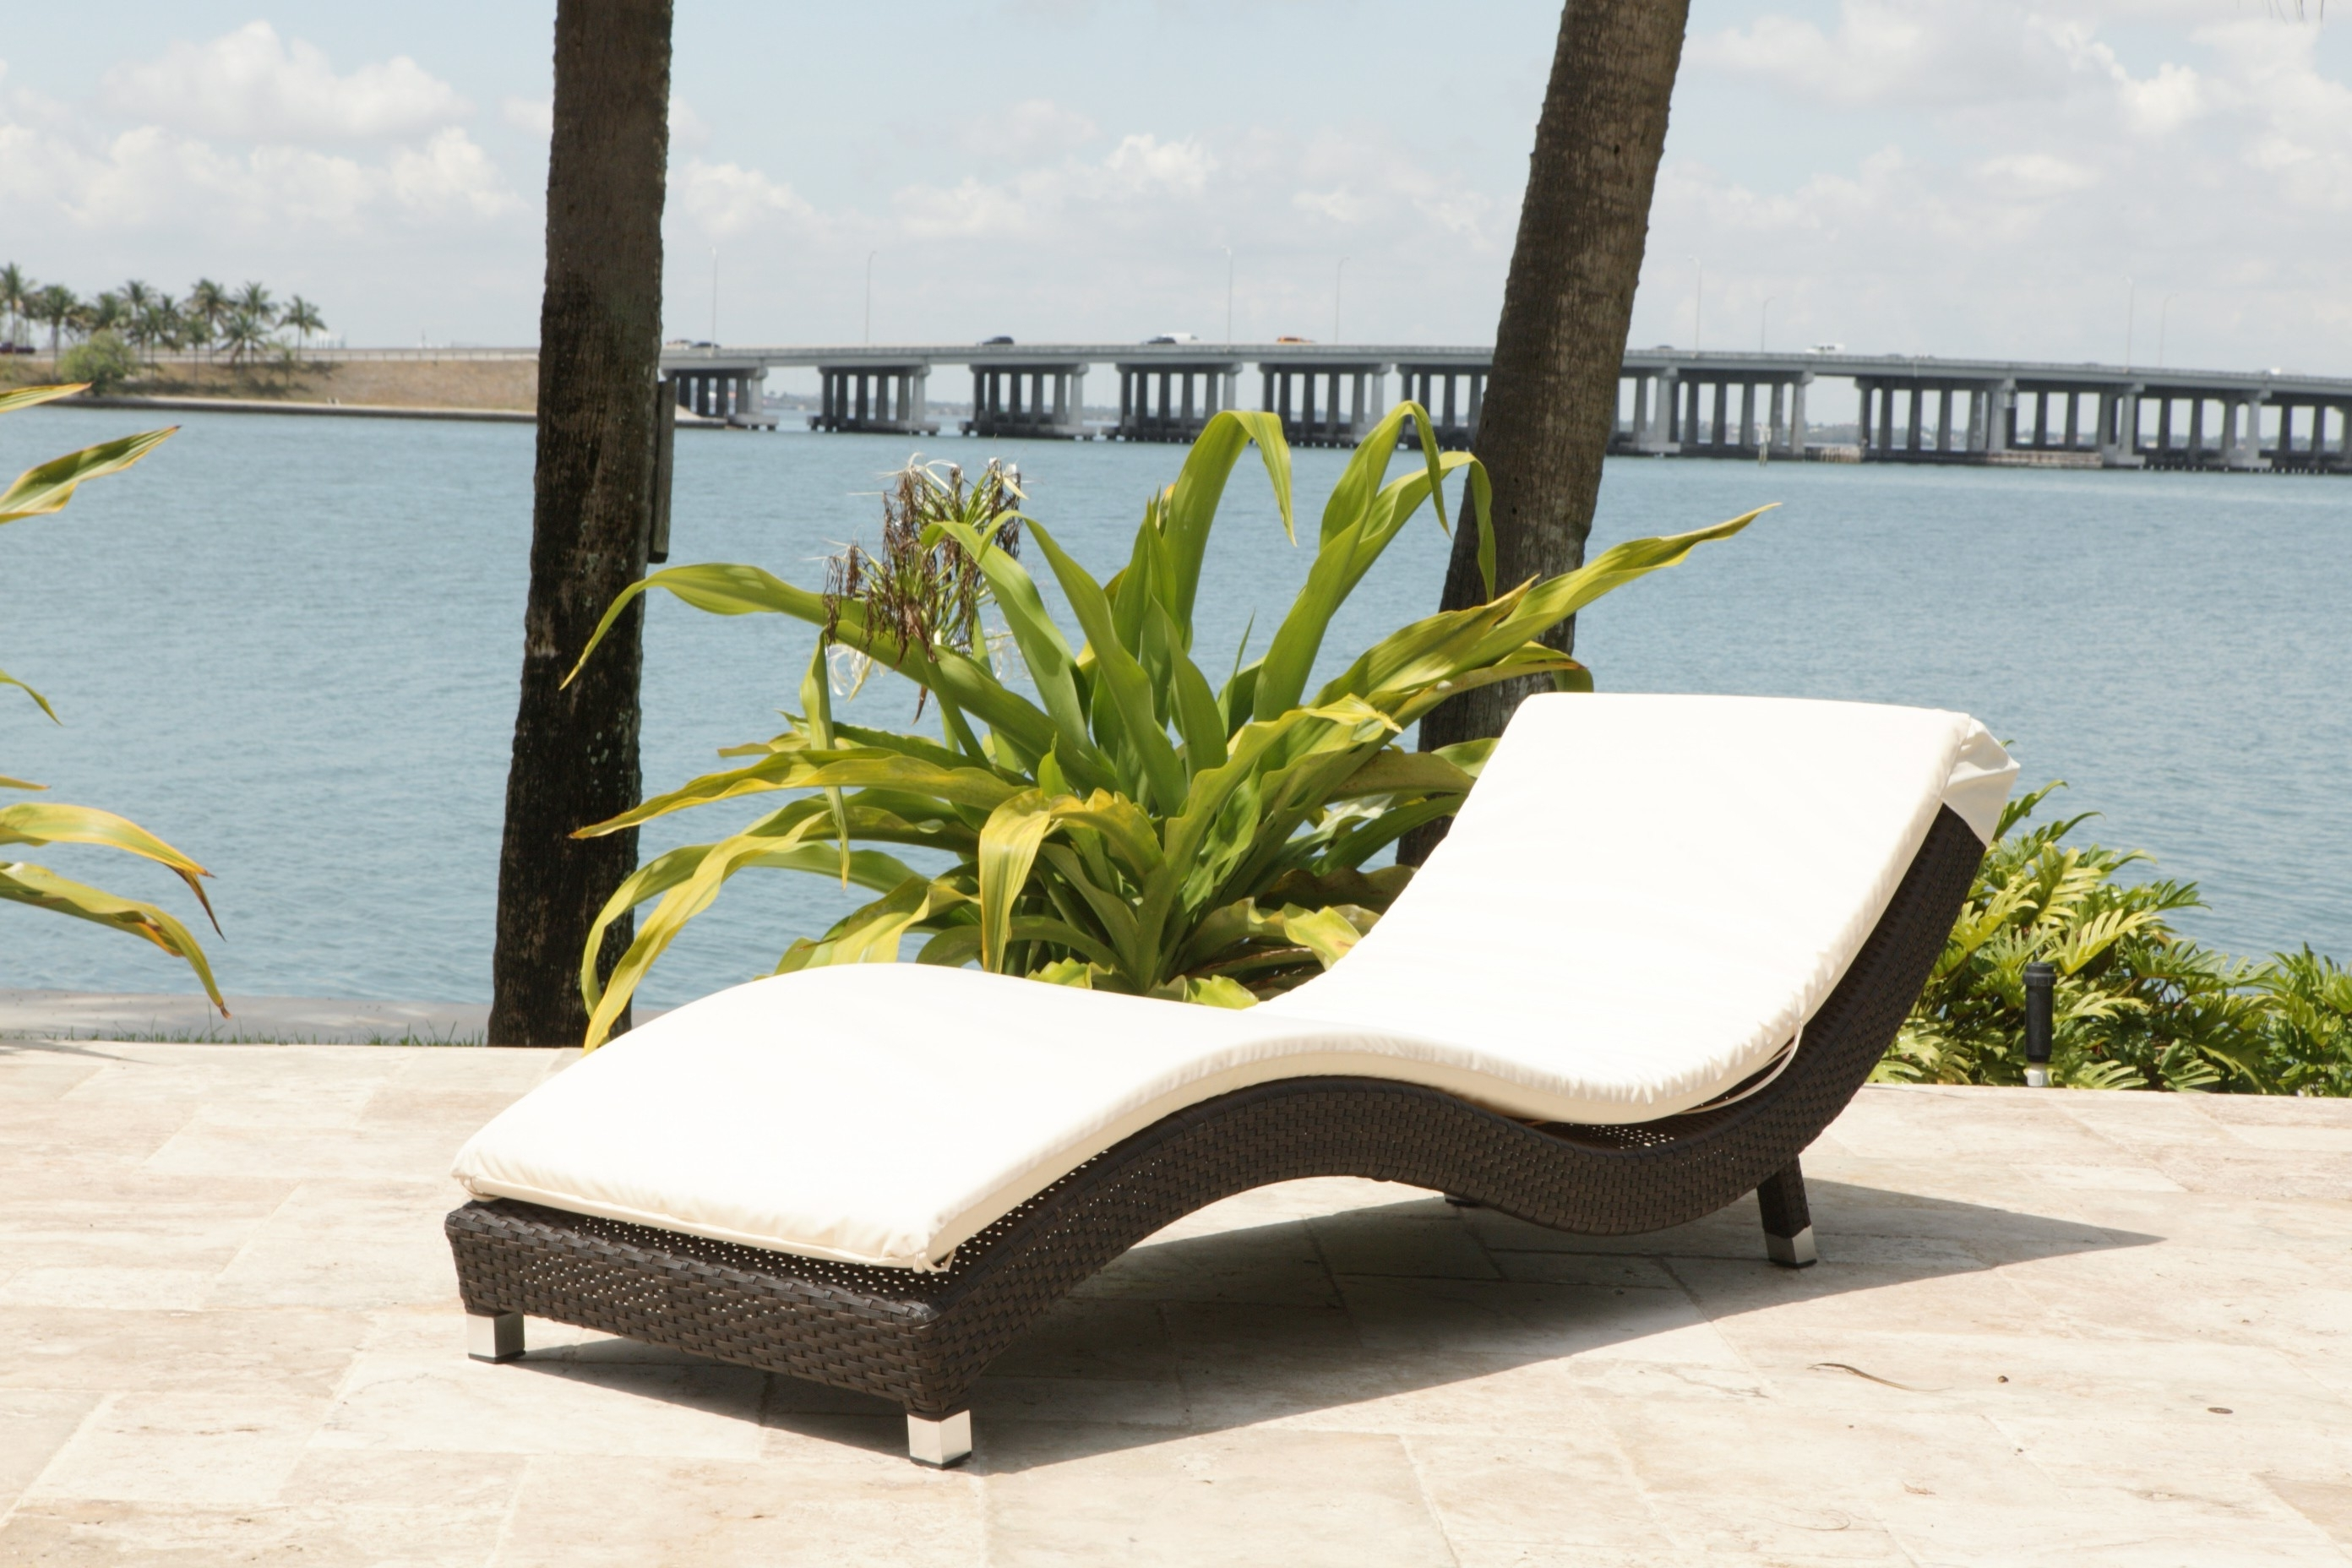 Outdoor : White Tufted Chaise Lounge Discount Indoor Chaise With Regard To Best And Newest Pool Chaise Lounges (View 9 of 15)